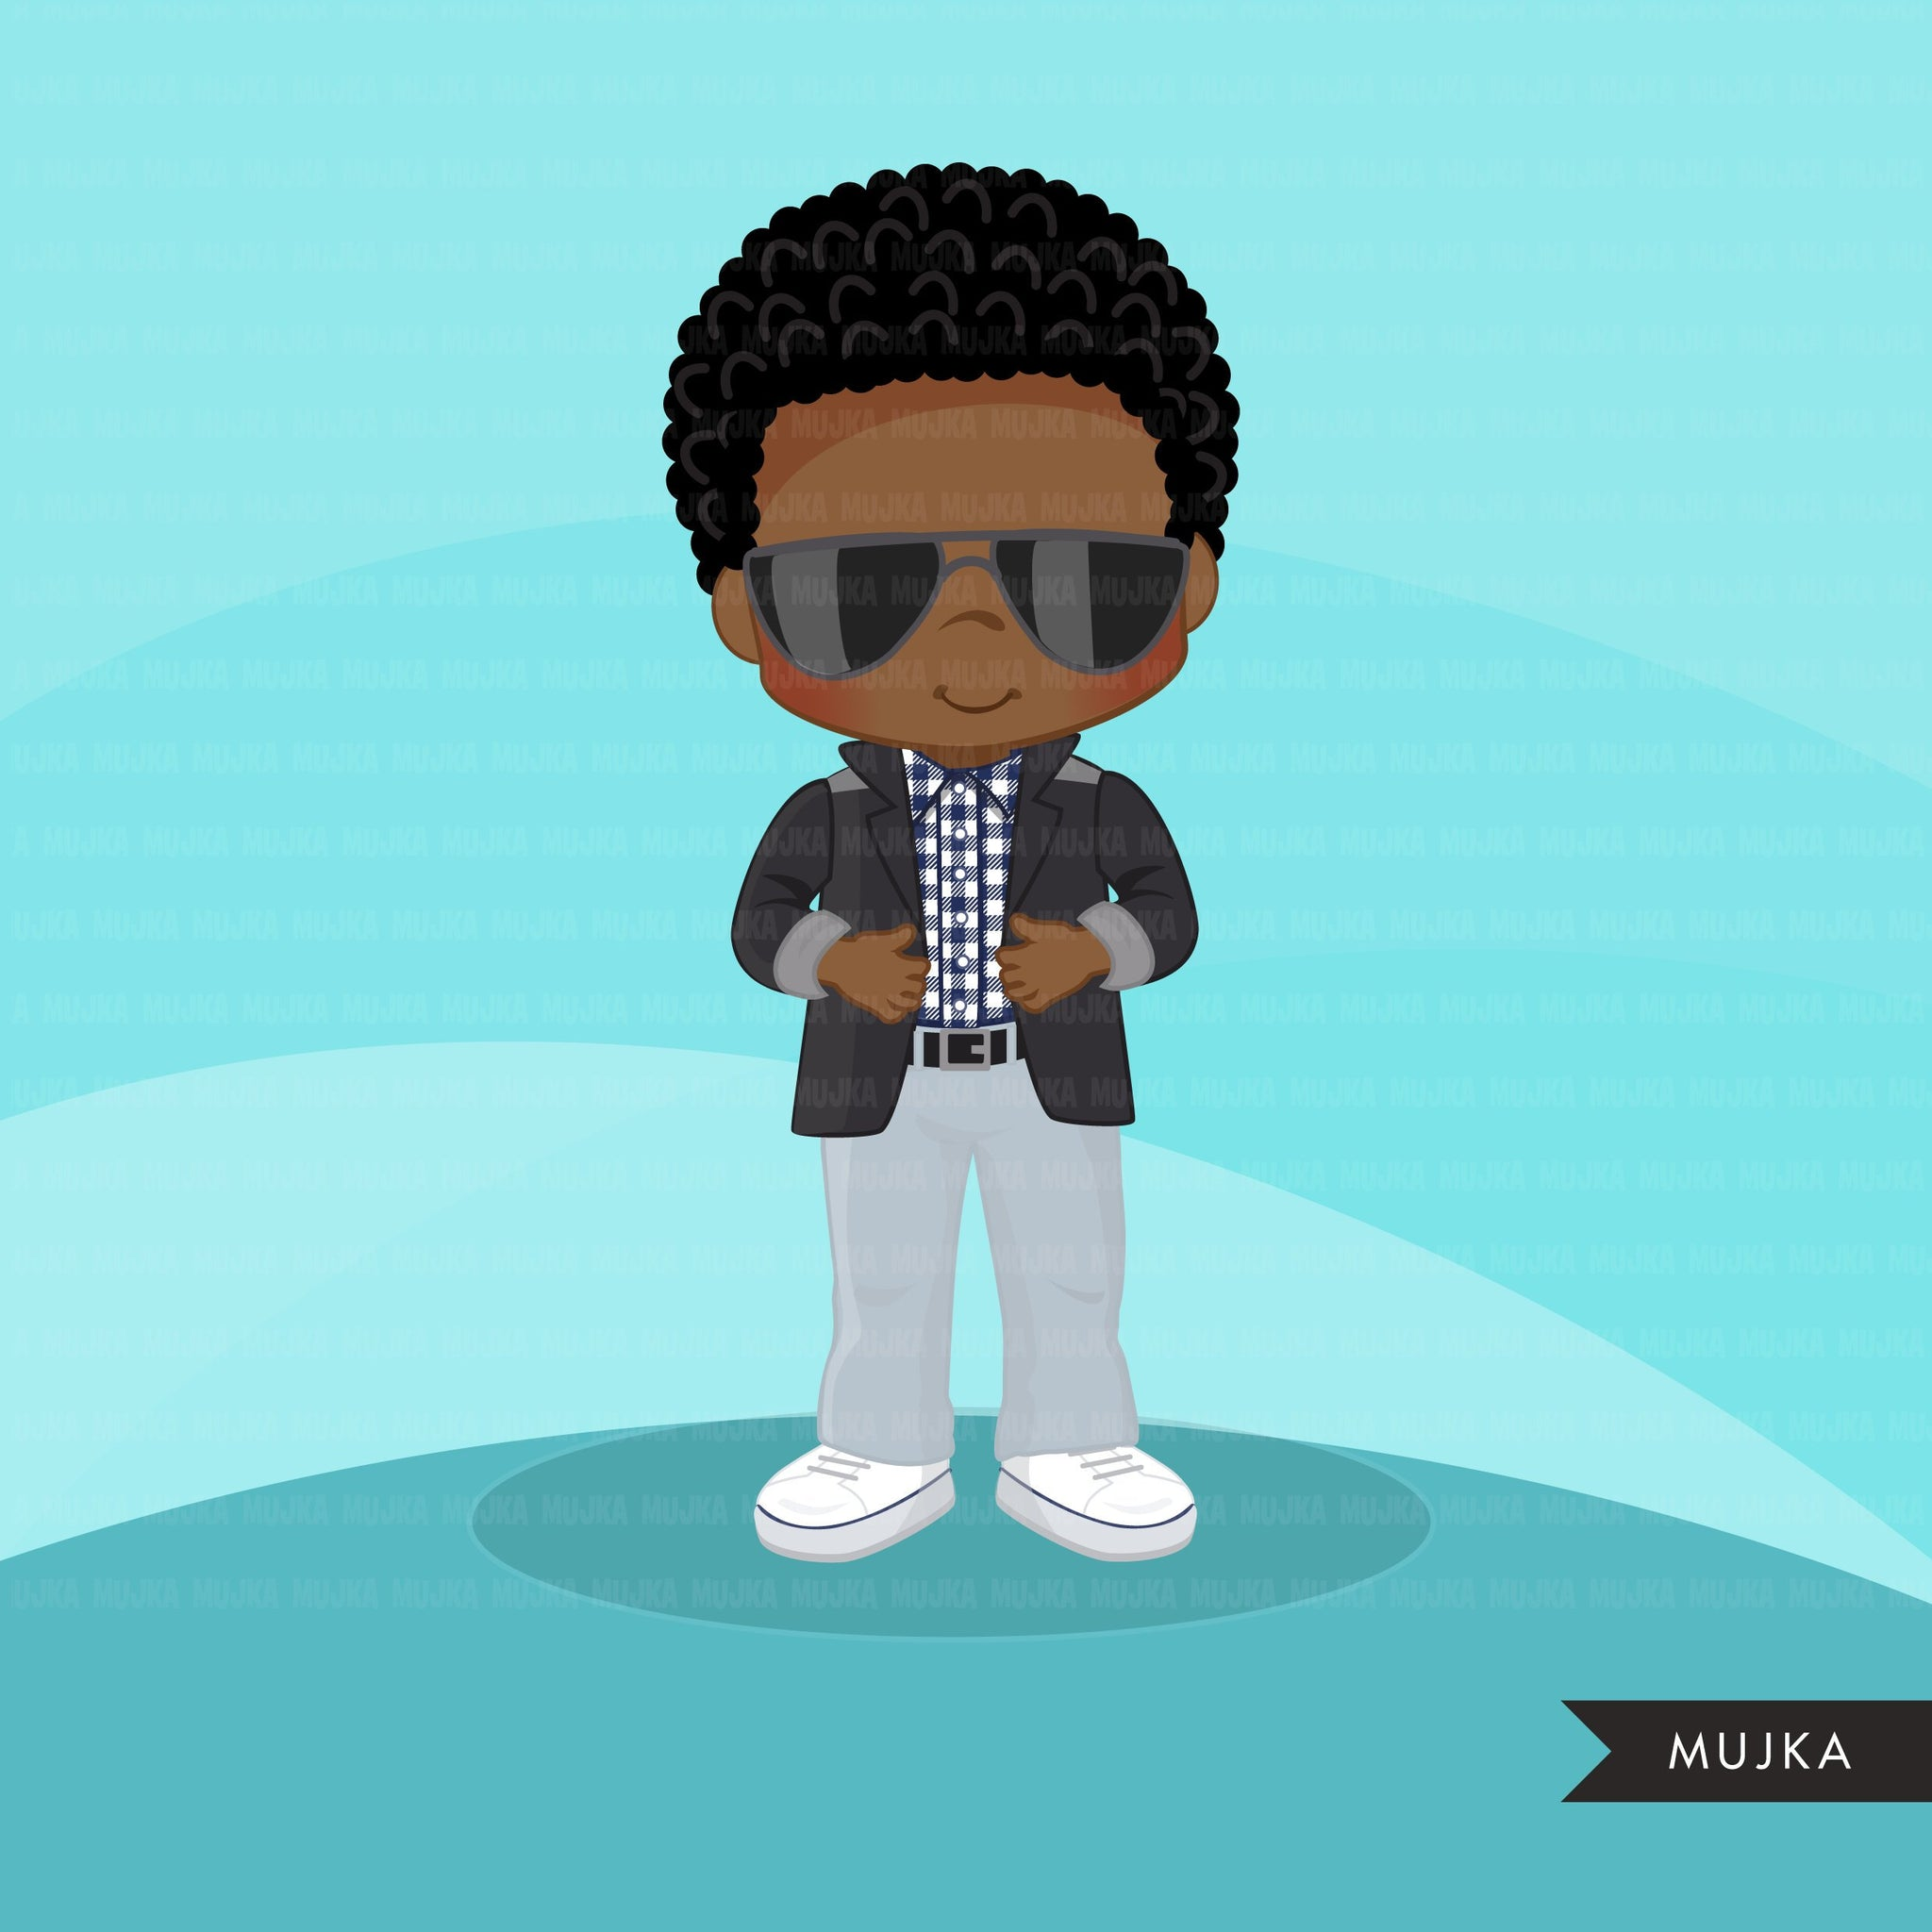 Little boy cute outfits clipart. Boys with jacket and sun glasses